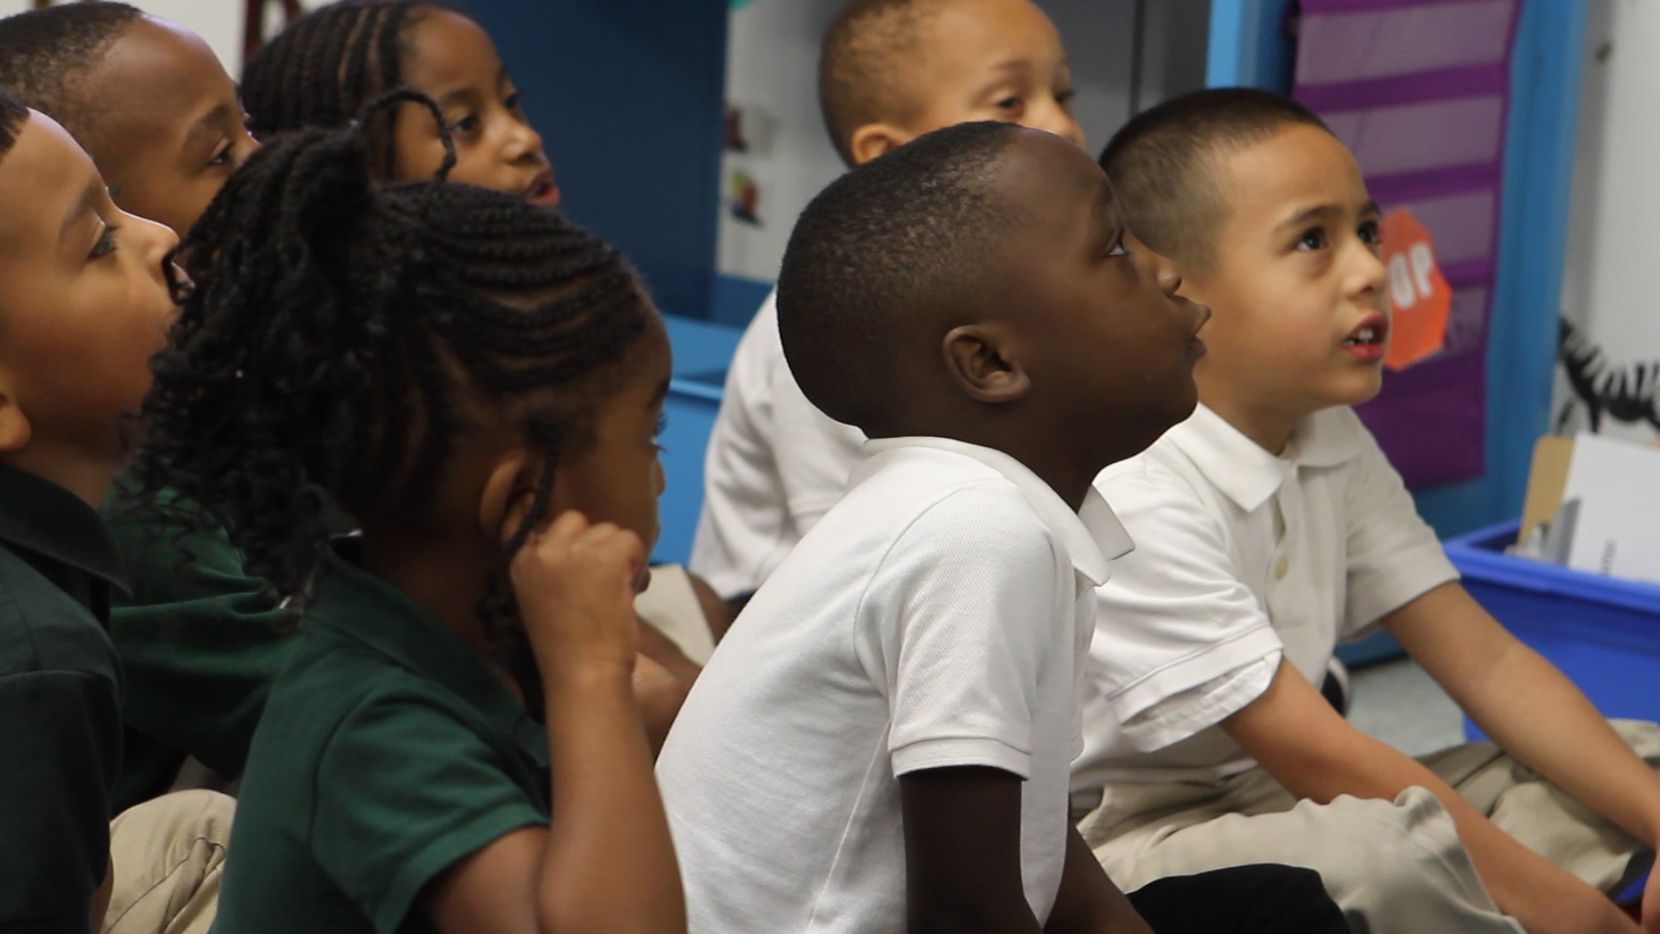 Students react to their teacher's instructions in a classroom at Harllee Early Childhood Center on Tuesday March 28, 2017.